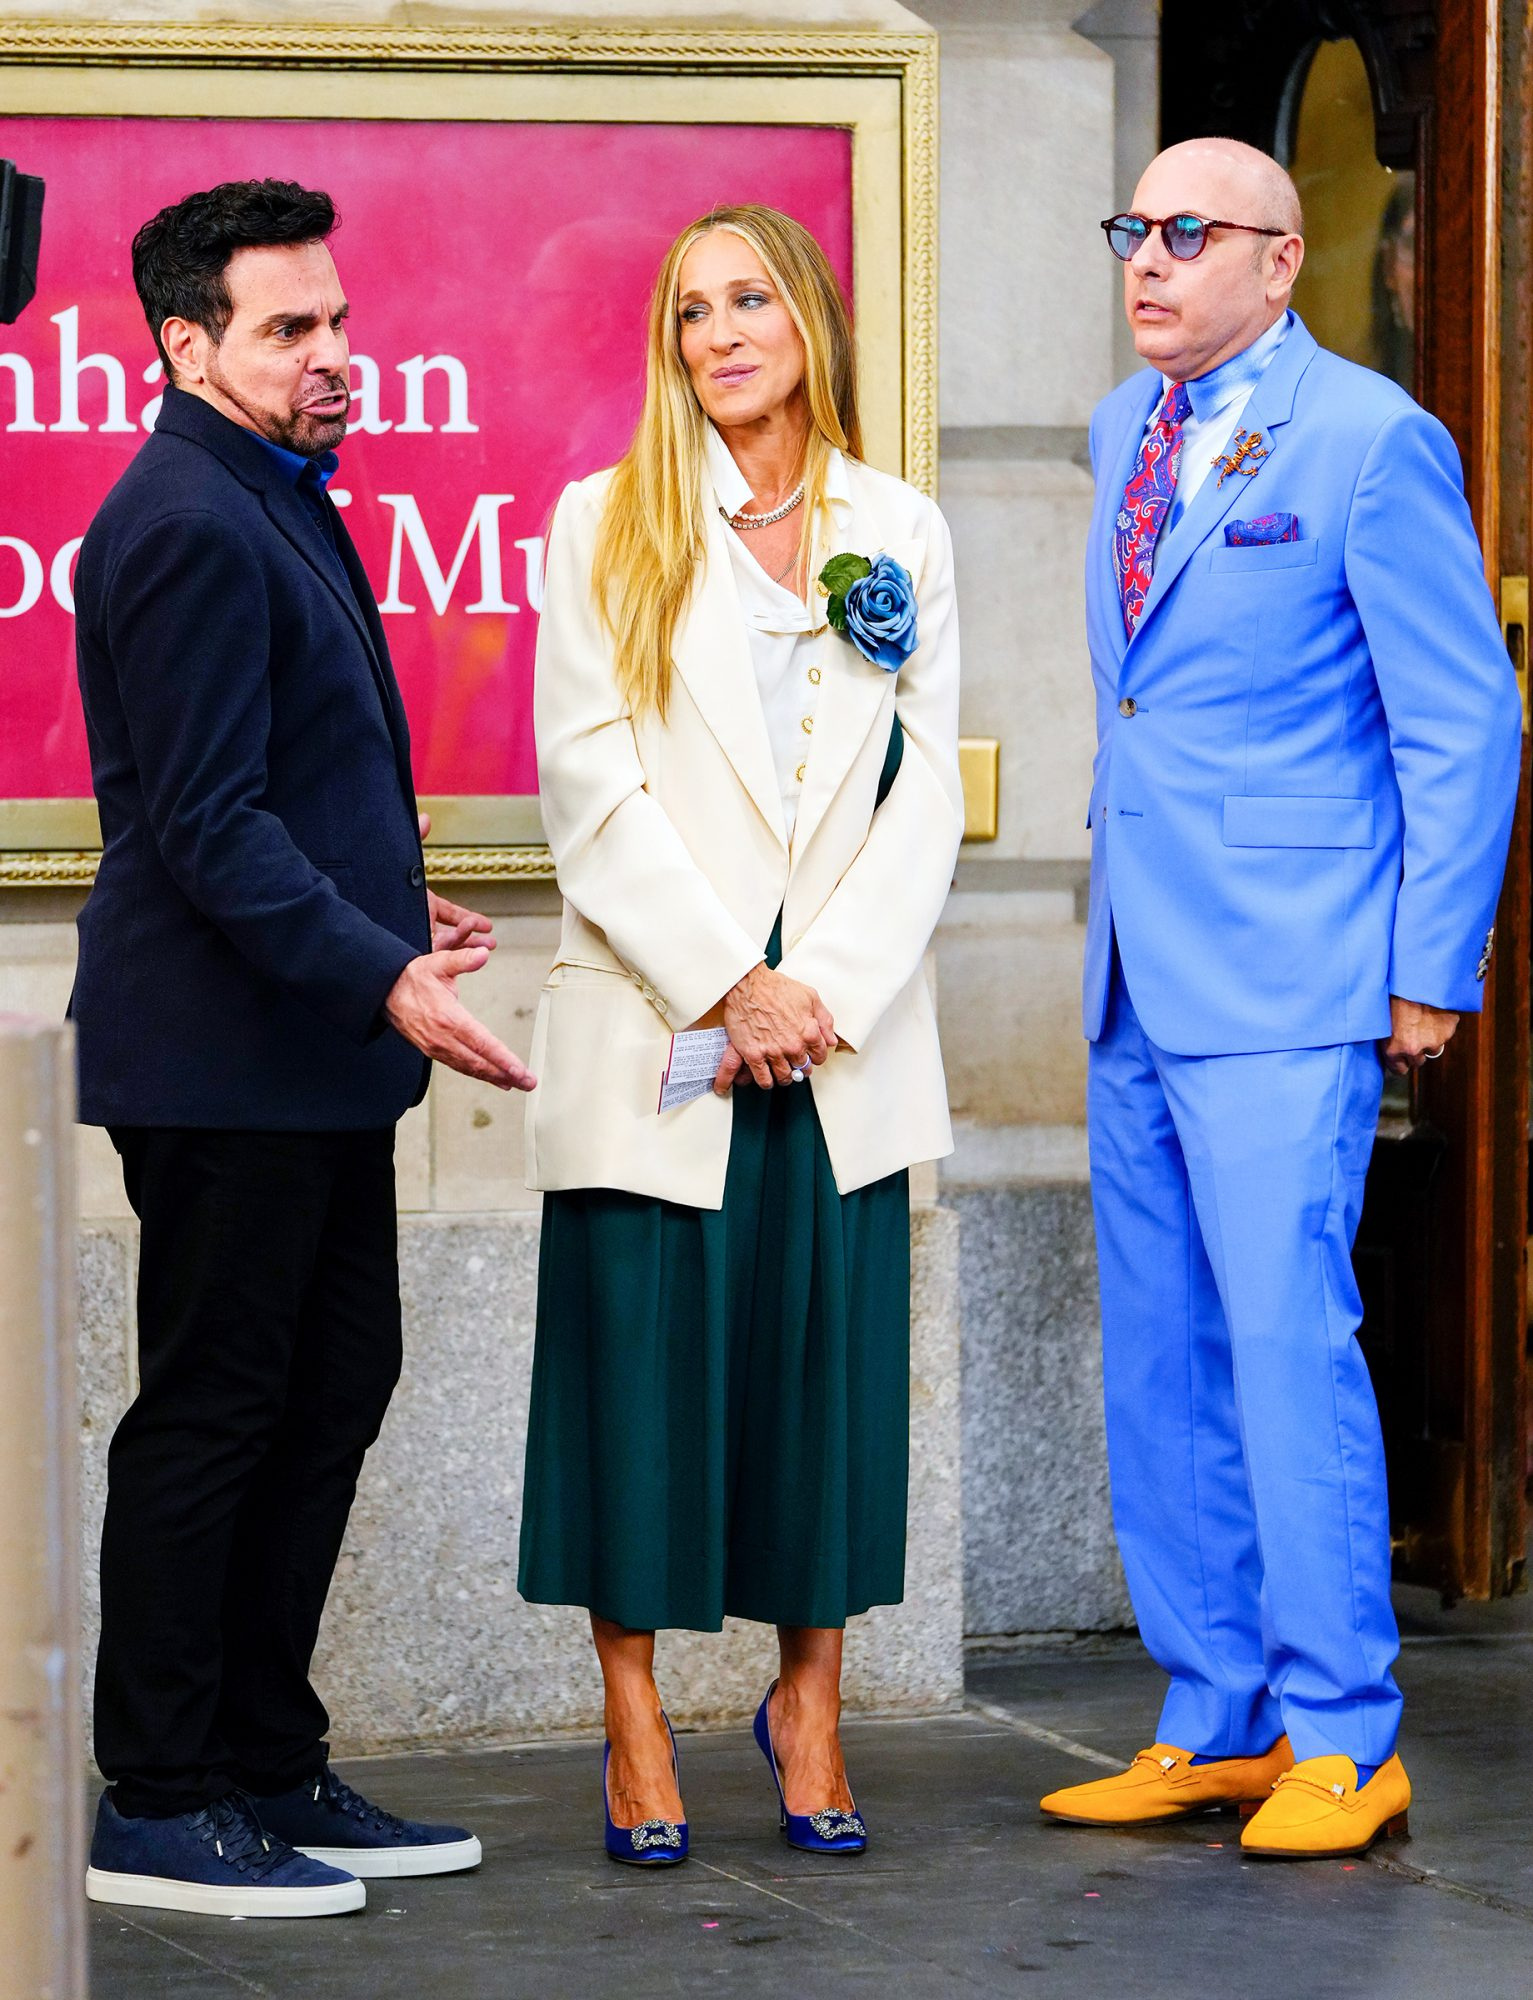 """Mario Cantone, Sarah Jessica Parker and Willie Garson are seen filming """"And Just Like That..."""" the follow up series to """"Sex and the City"""" on July 23, 2021 in New York City."""